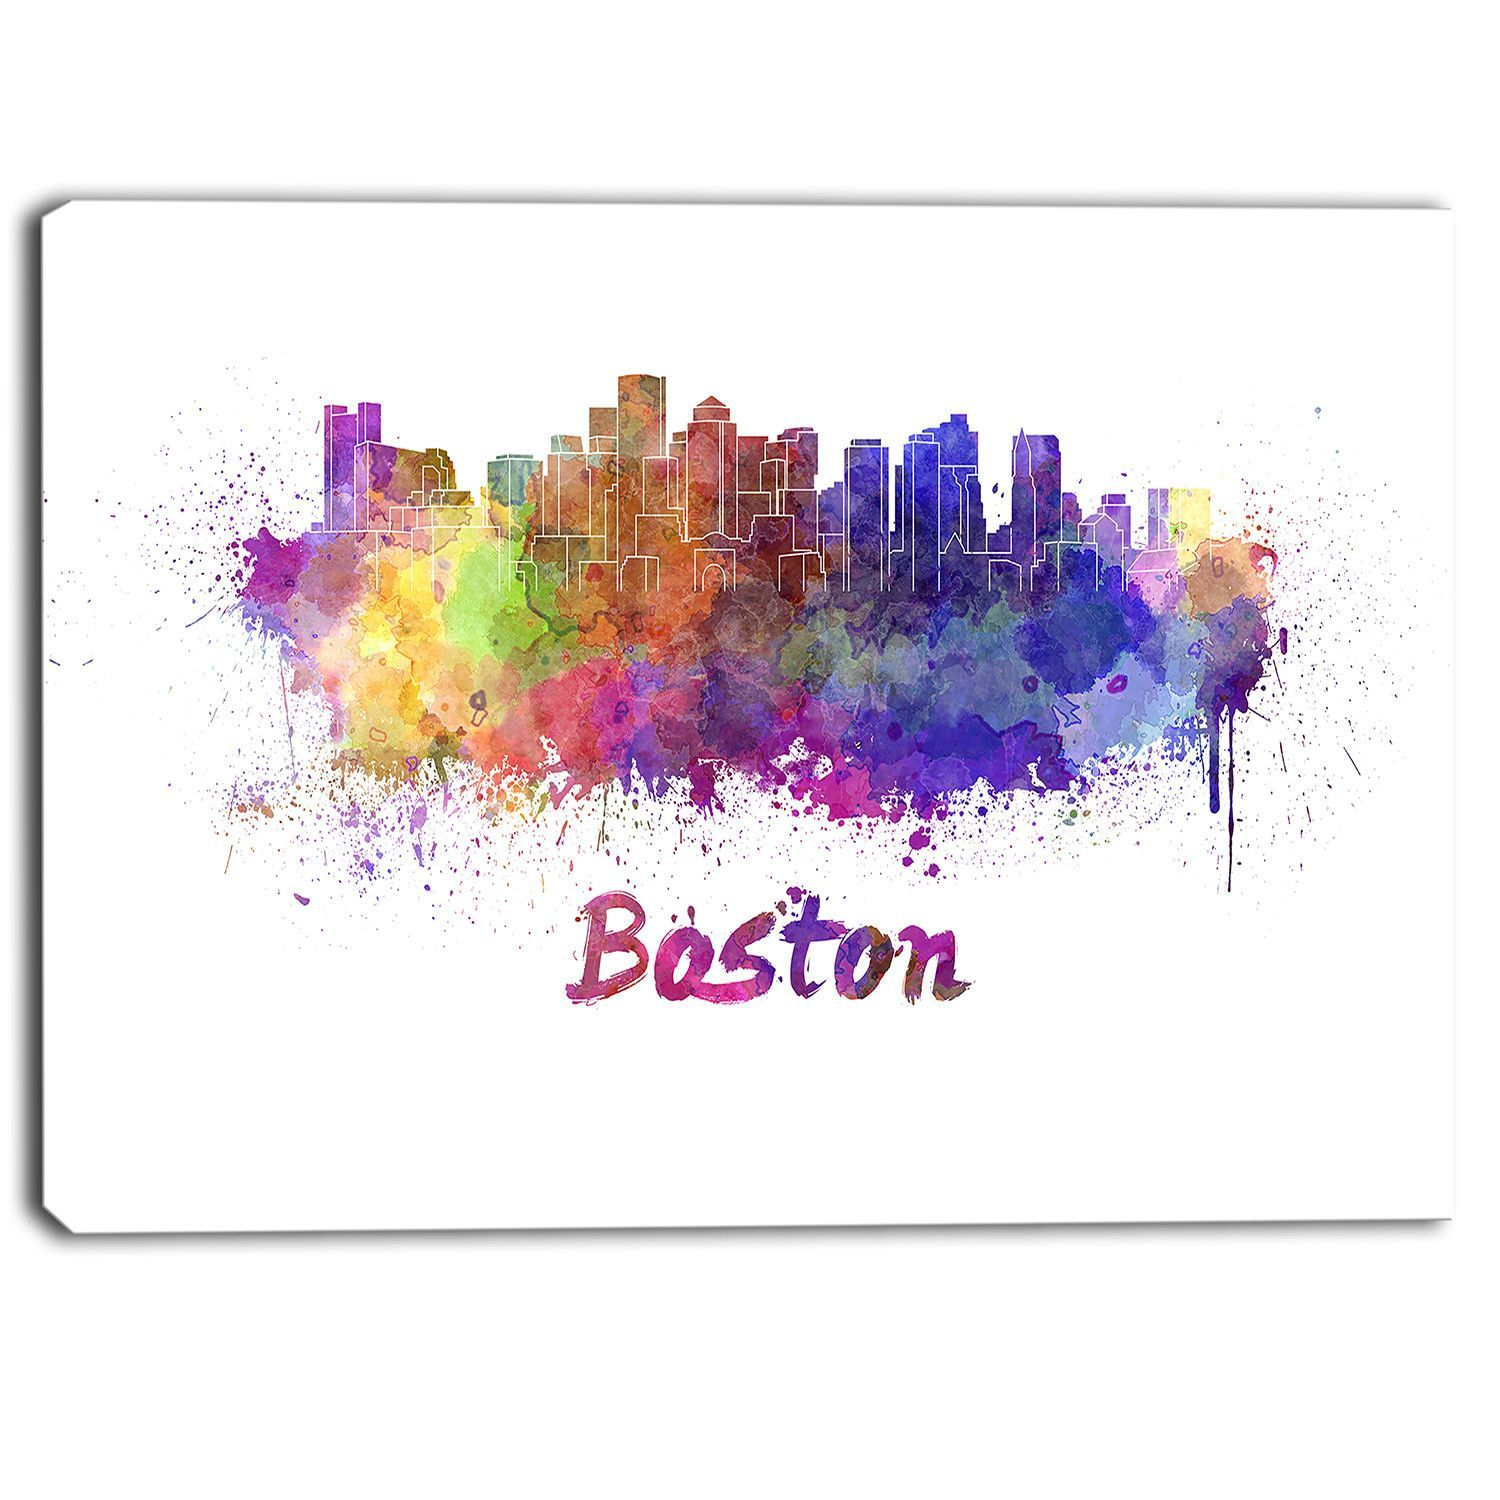 Boston Skyline Cityscape Graphic Art on Wrapped Canvas